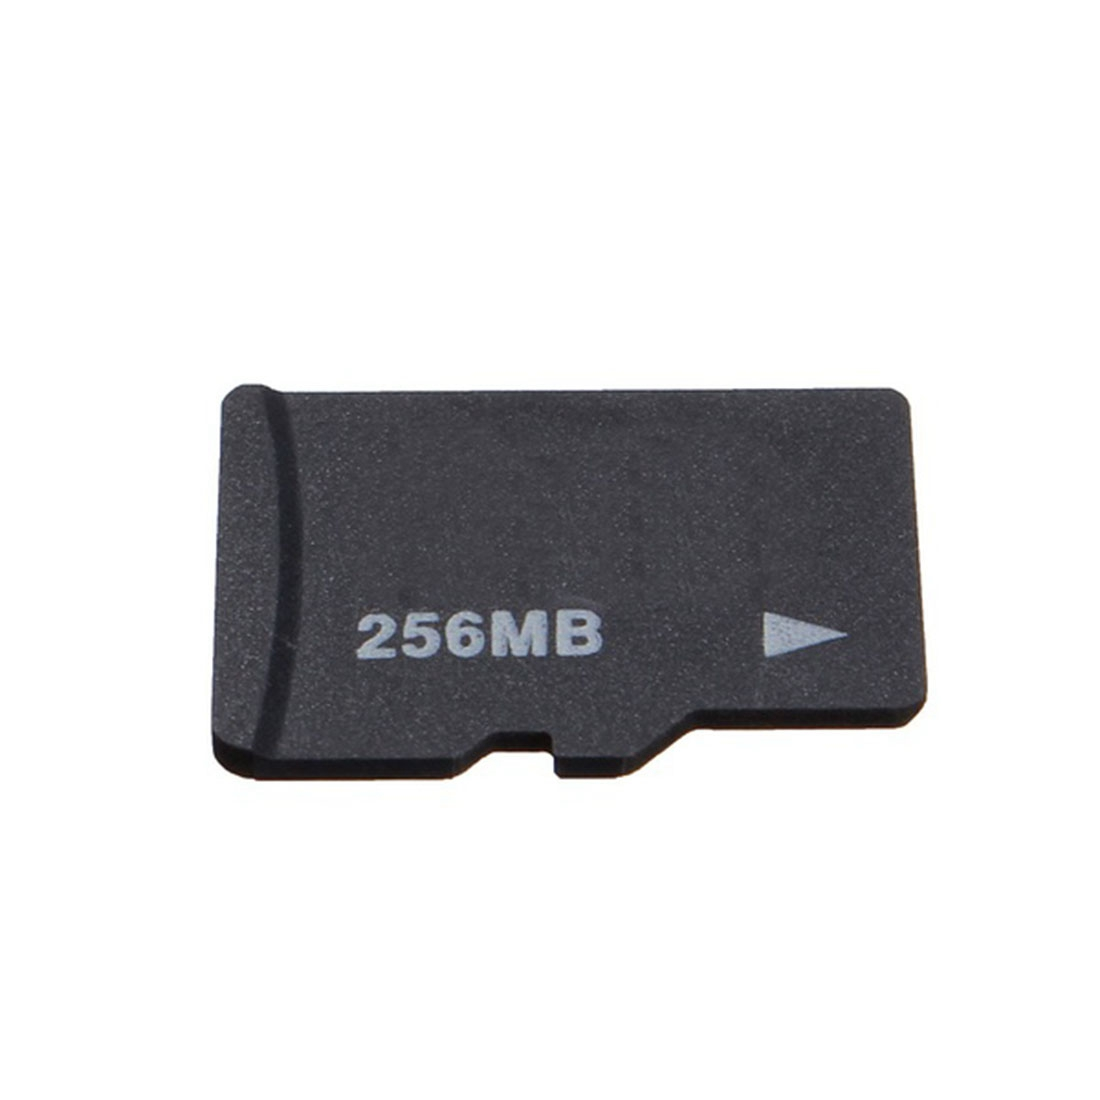 Micro SD TF Memory Card For Samsung Galaxy S5 S4 S3 Note 4 3 2 HTC Sony Nokia Cellphone